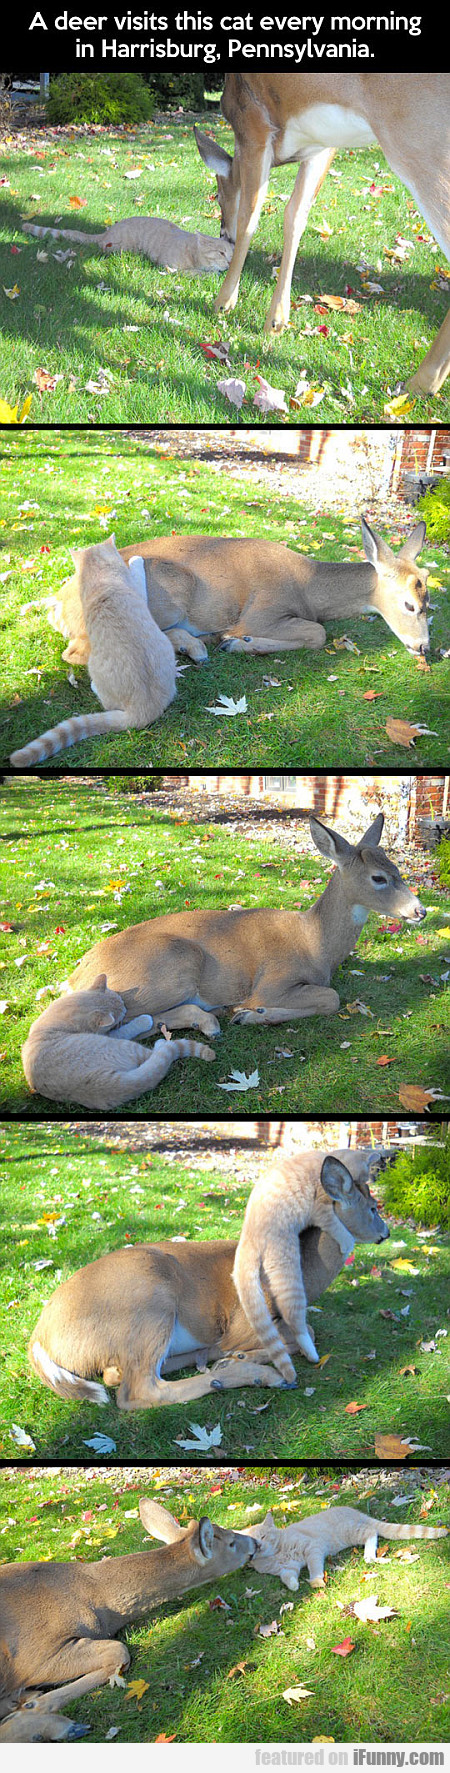 A Deer Visits This Cat Every Morning...